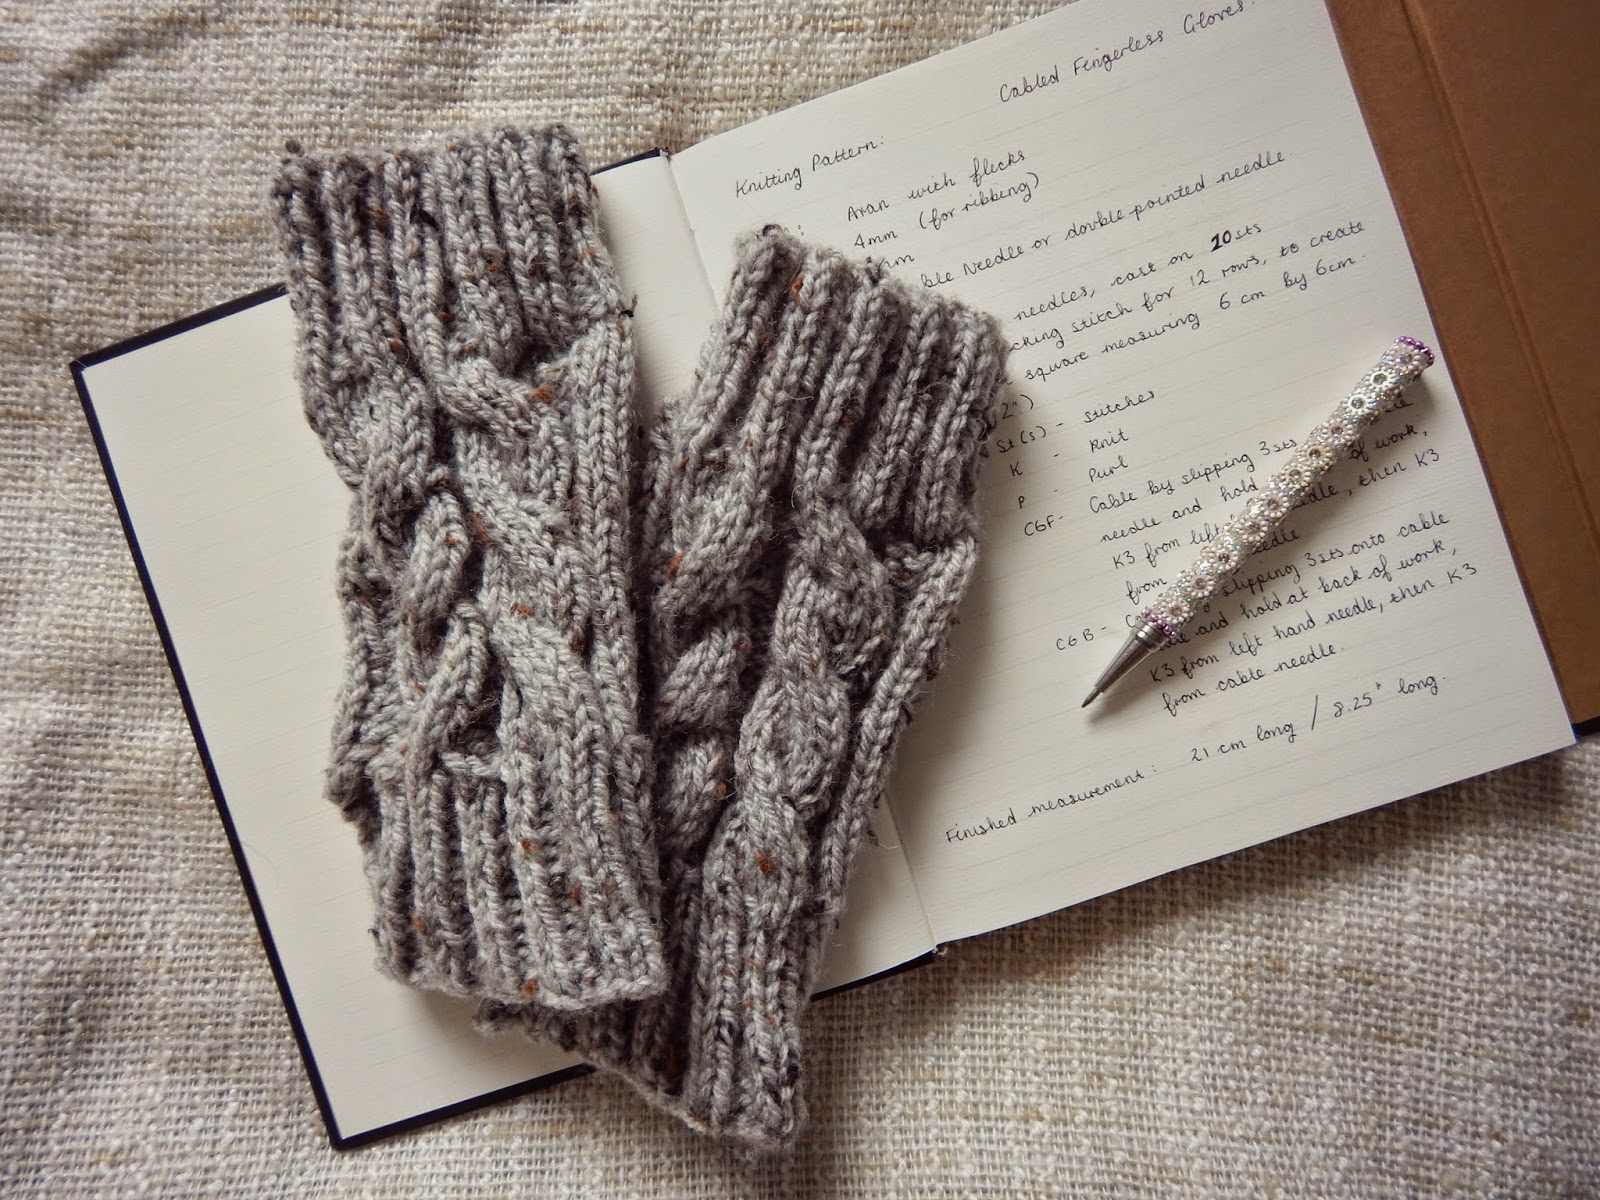 Knitting Pattern: Cabled Fingerless Gloves